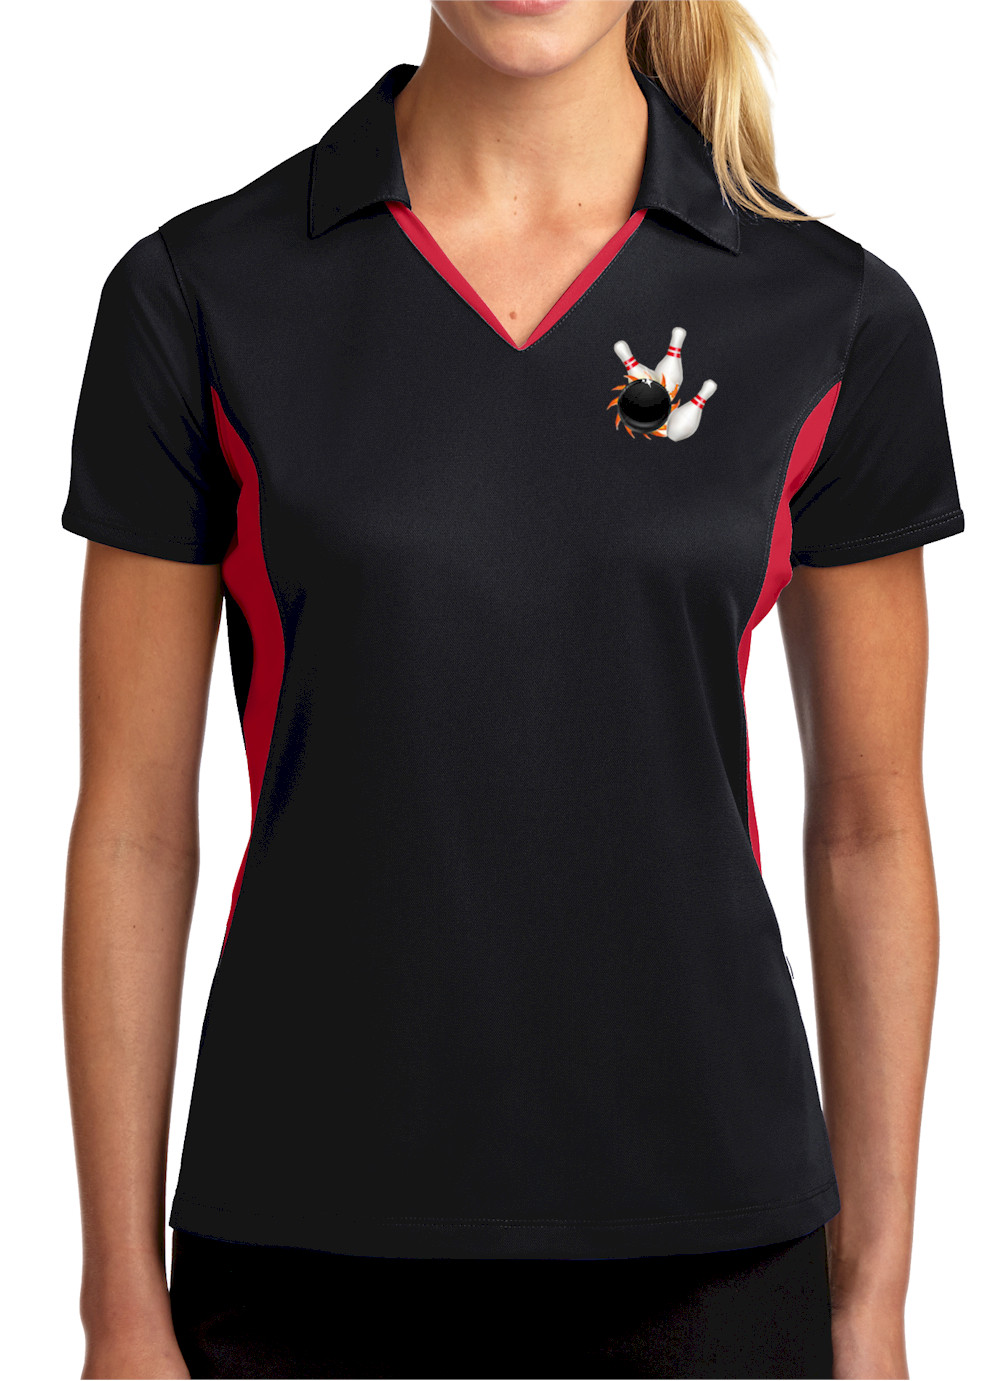 Ladies Bowls Tops and Blouses. Best selling, top names, easy care, latest designs at great prices. Free UK Delivery £50 and over.